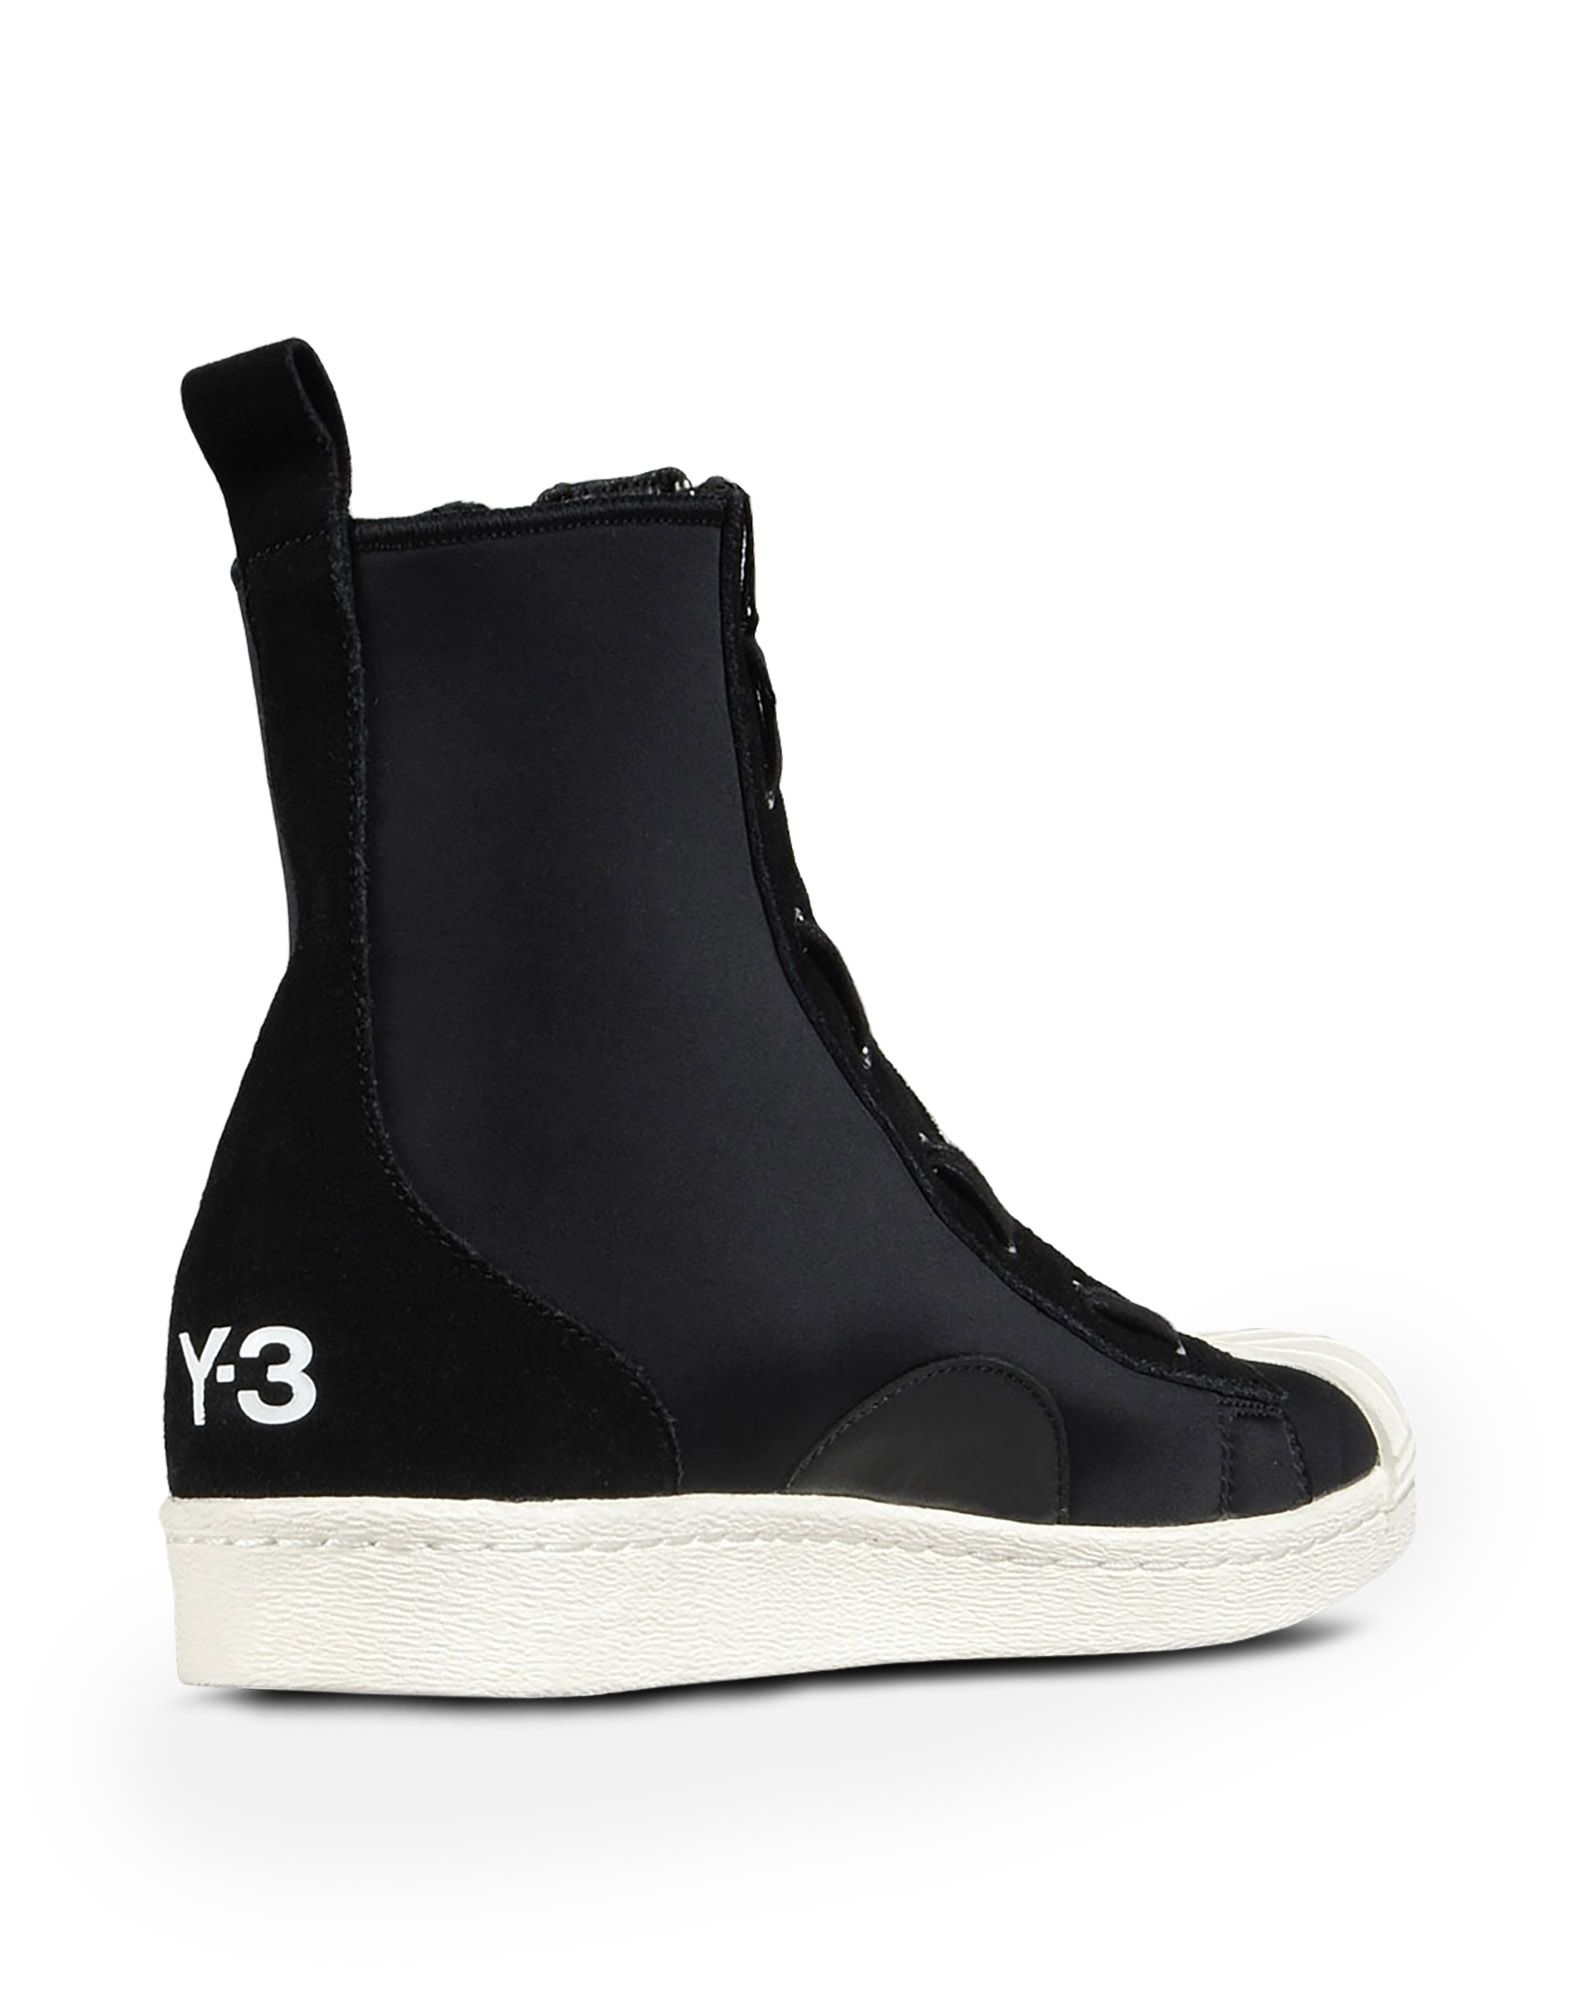 Y-3 PRO ZIP SHOES unisex Y-3 adidas